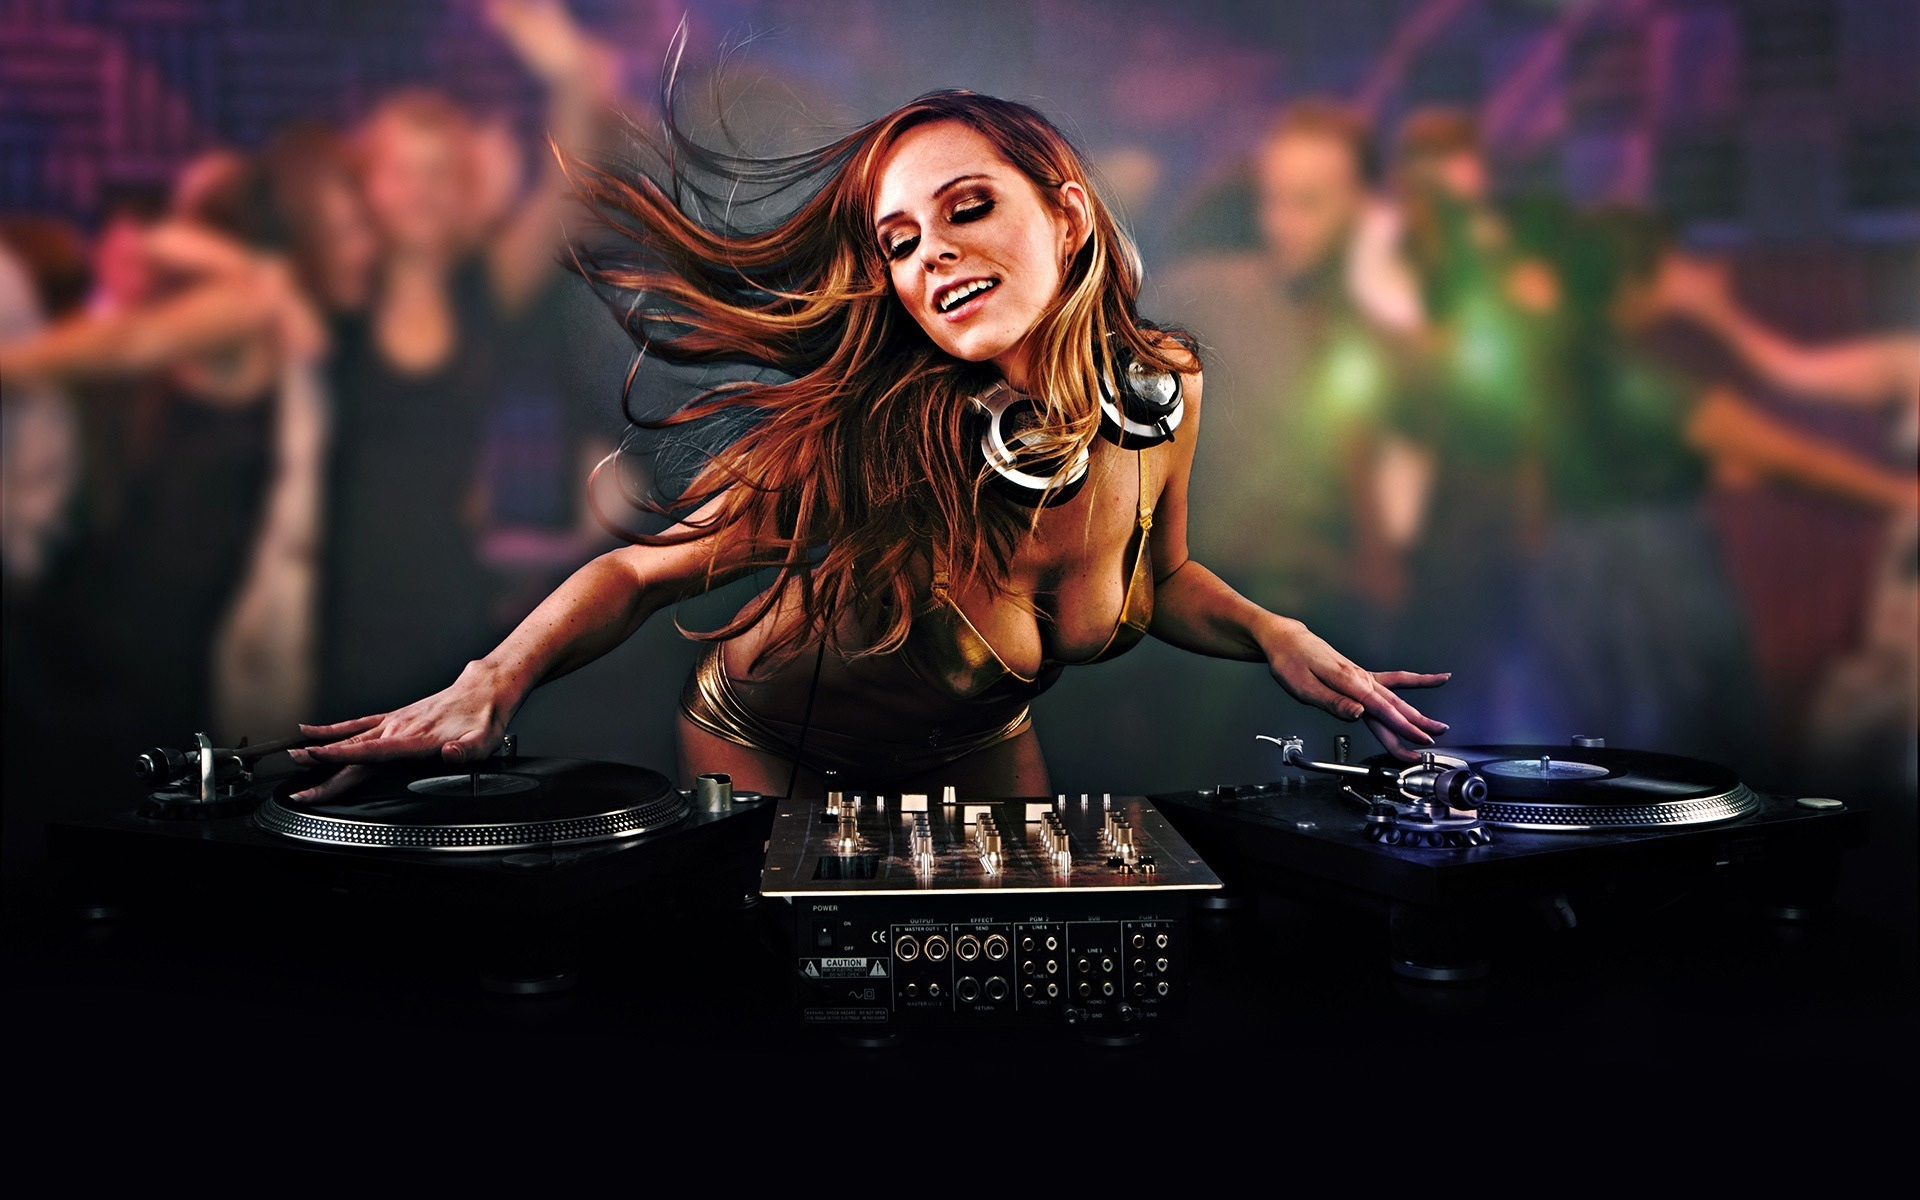 Girly DJ Mixing Wallpaper - FunDJStuff.com.